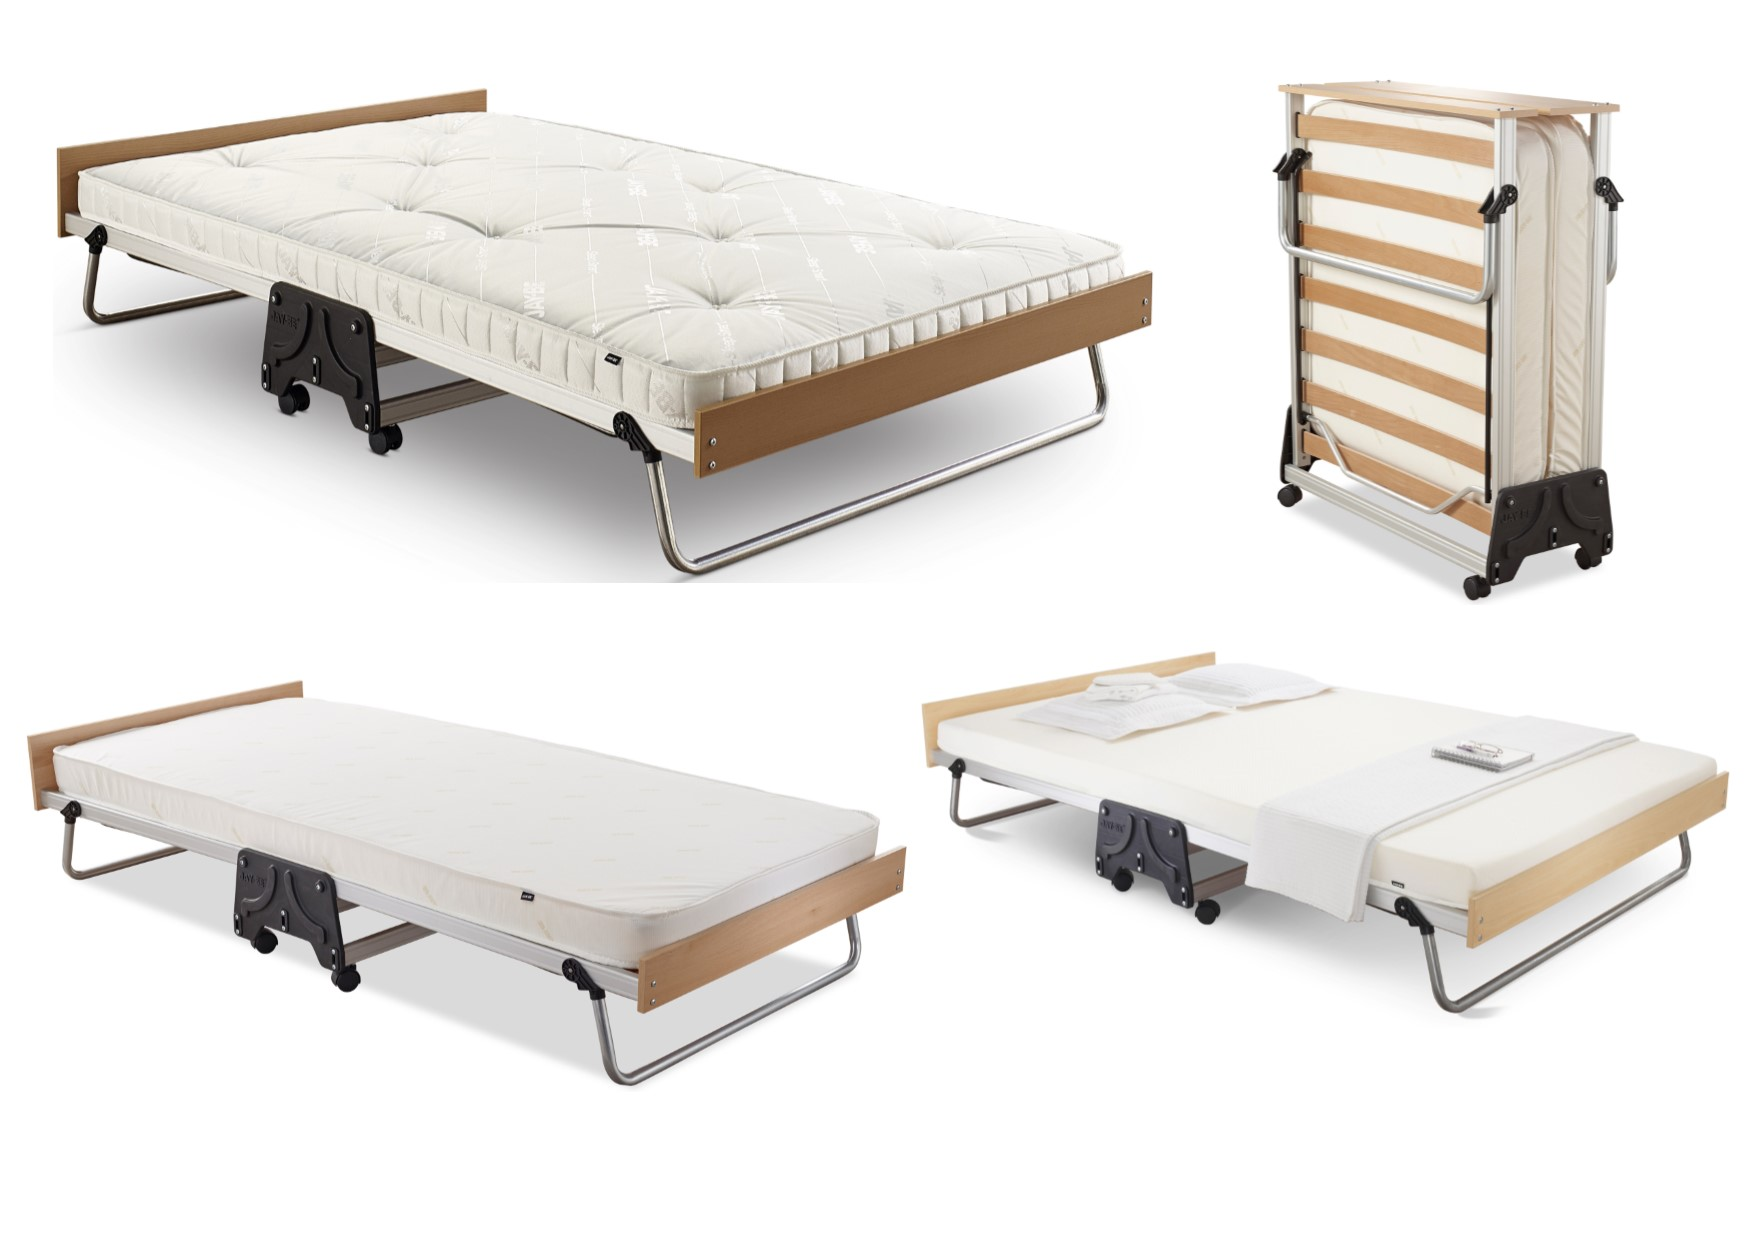 Jay Be J Bed Compact Folding Metal